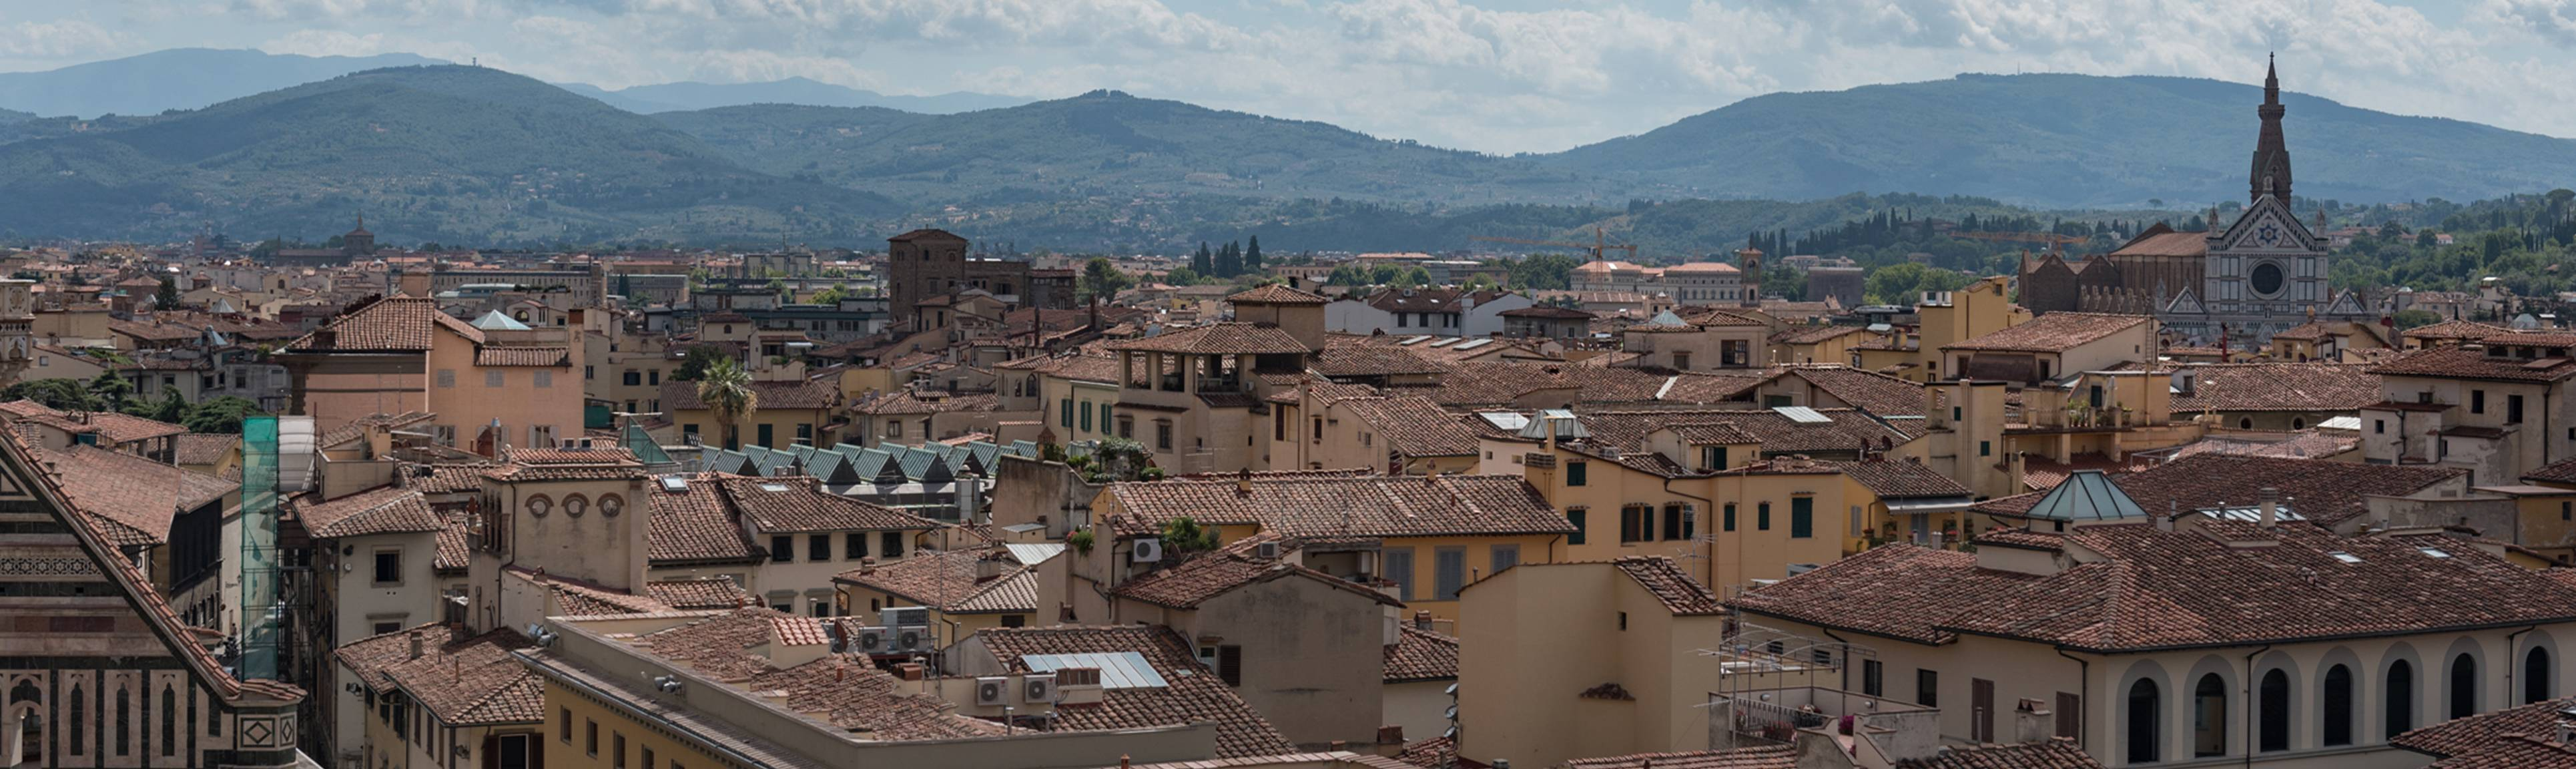 Looking over the tiled rooftops of Florence, Italy